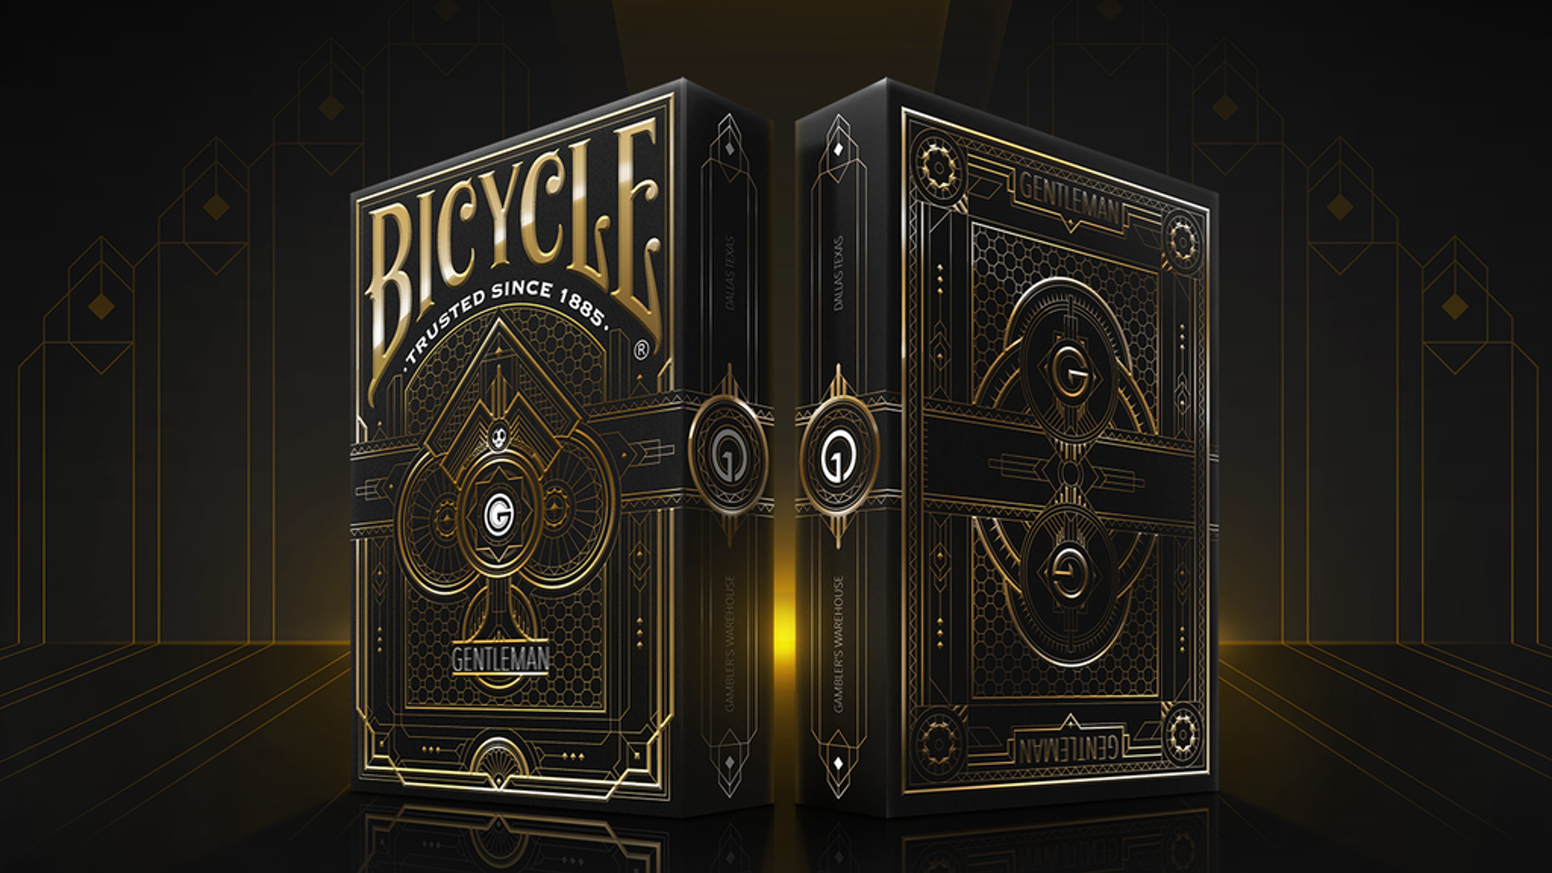 Stunning Art-Deco inspired custom playing cards from Blackout Brother. Decks to be foiled and embossed with inner tuck design.